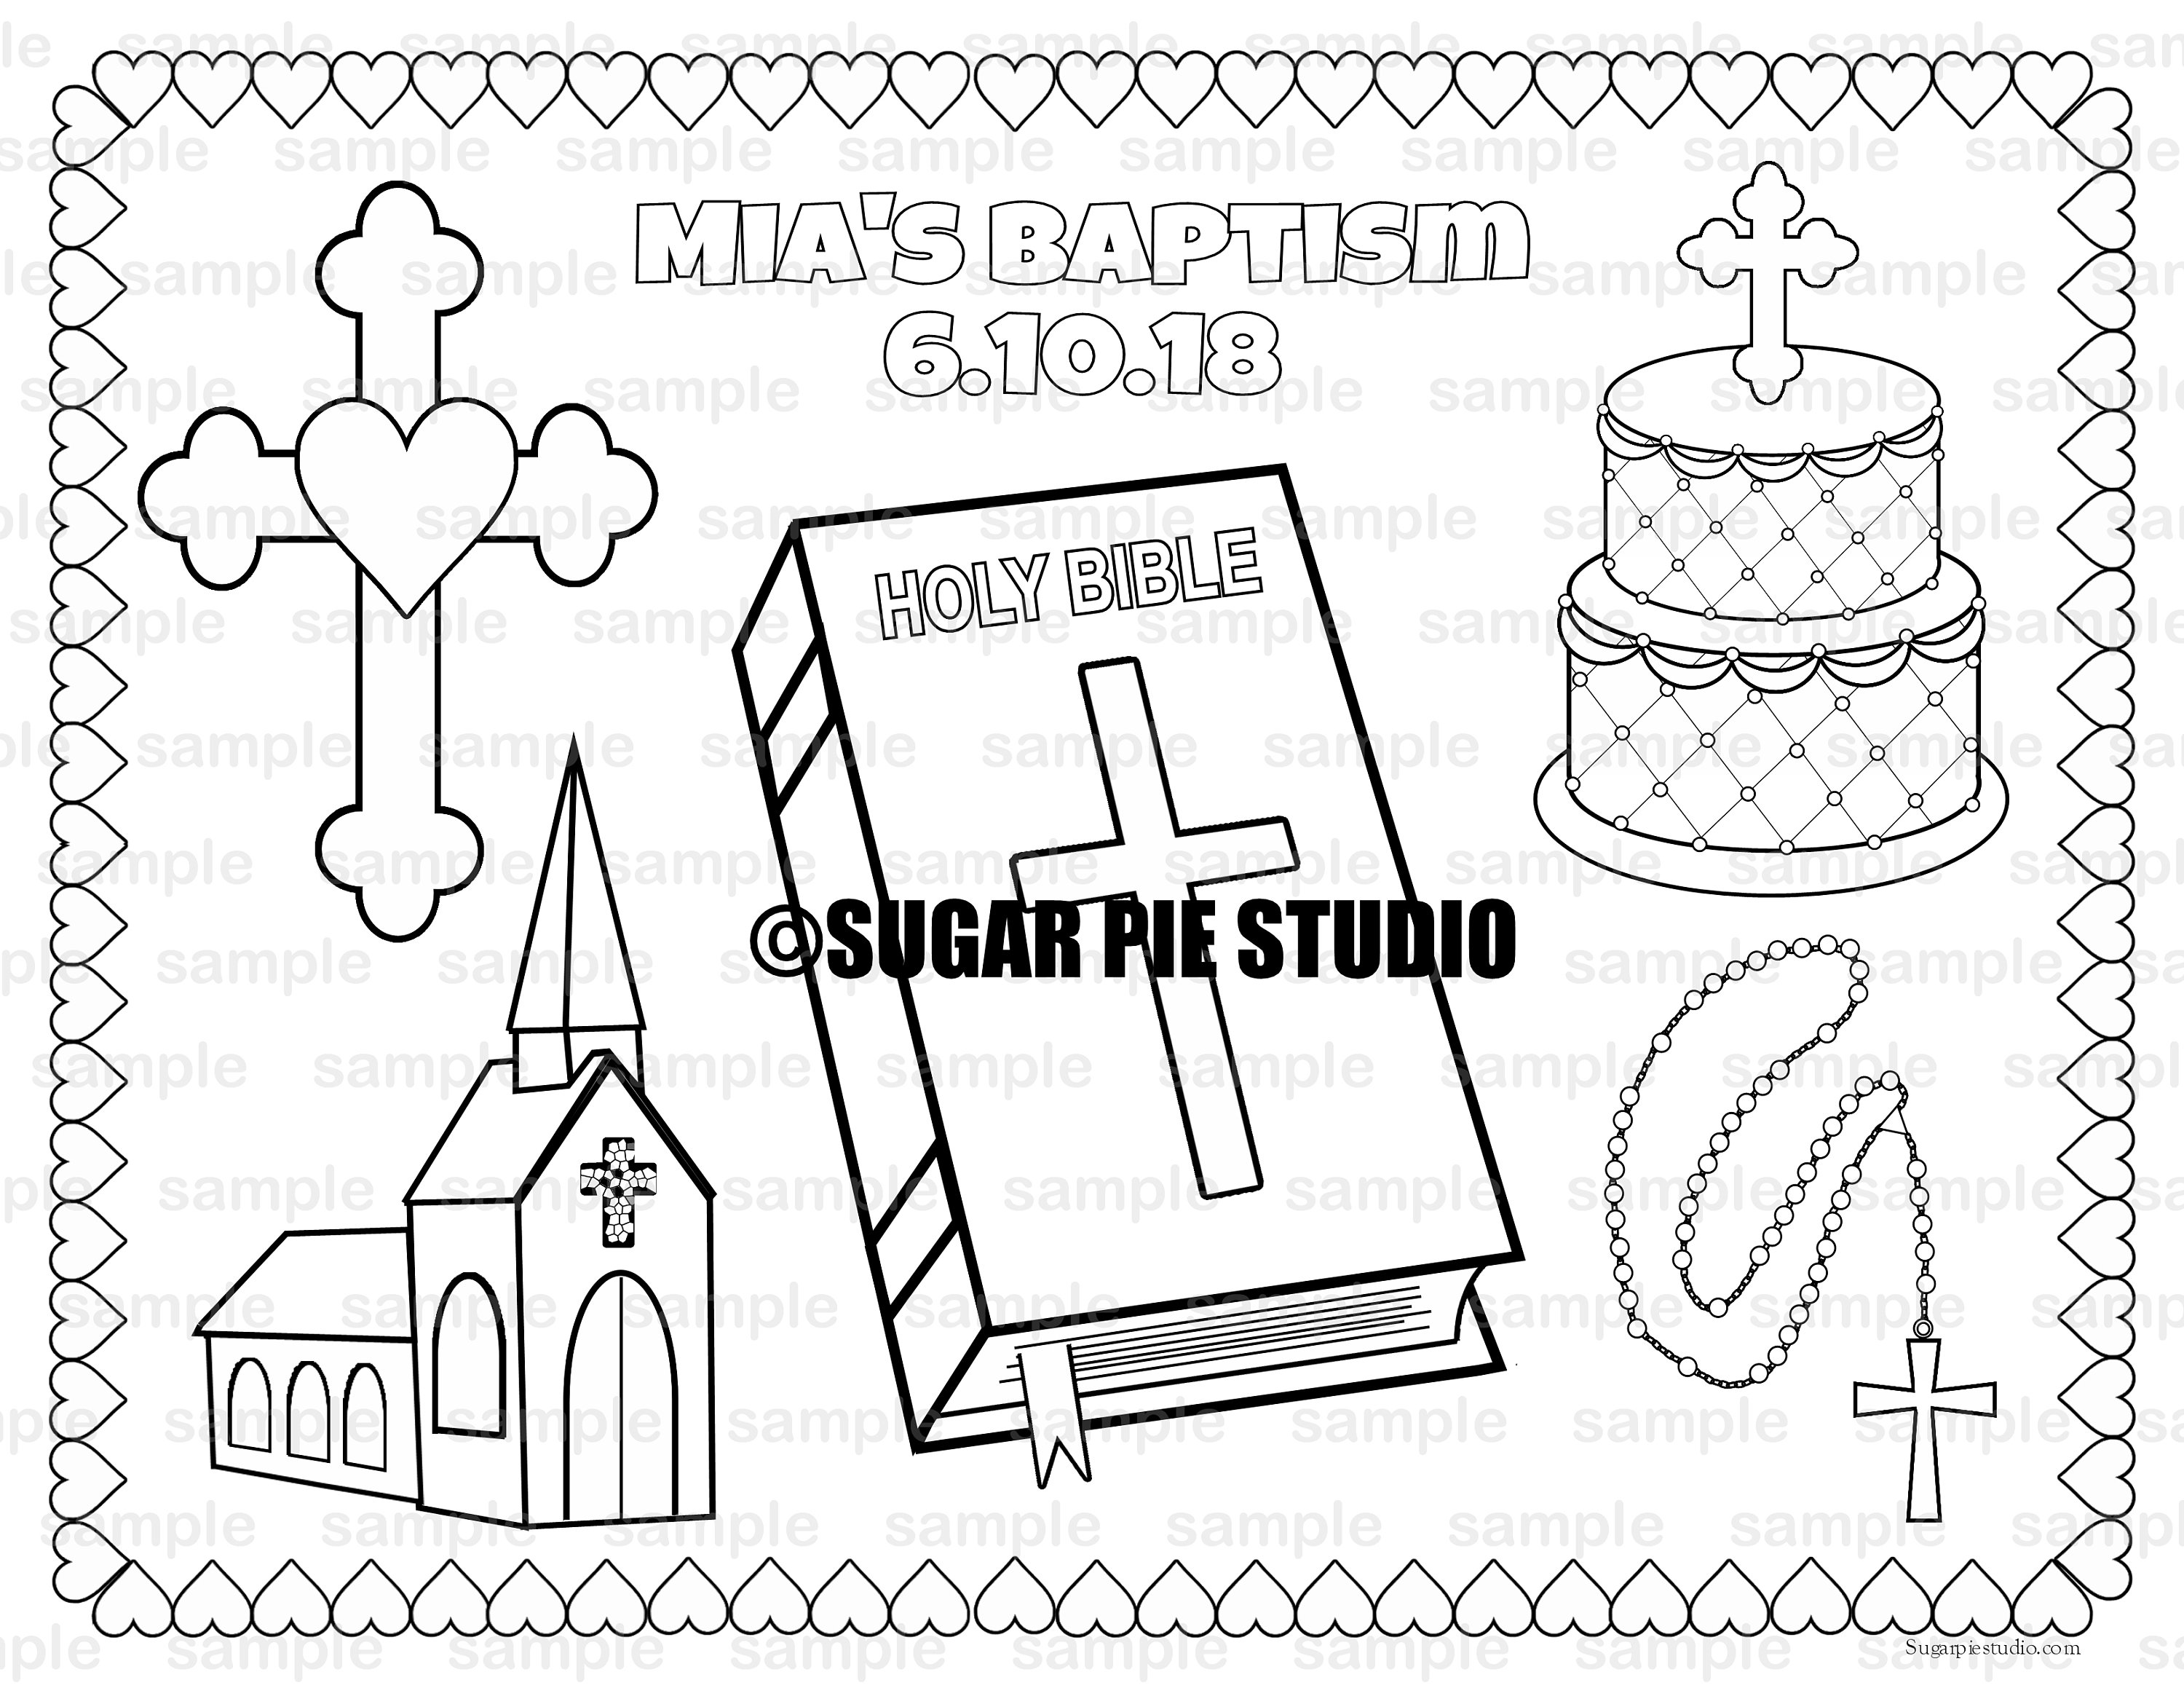 Christening Bapstism coloring Page placemat 8.5x11 Childrens ...